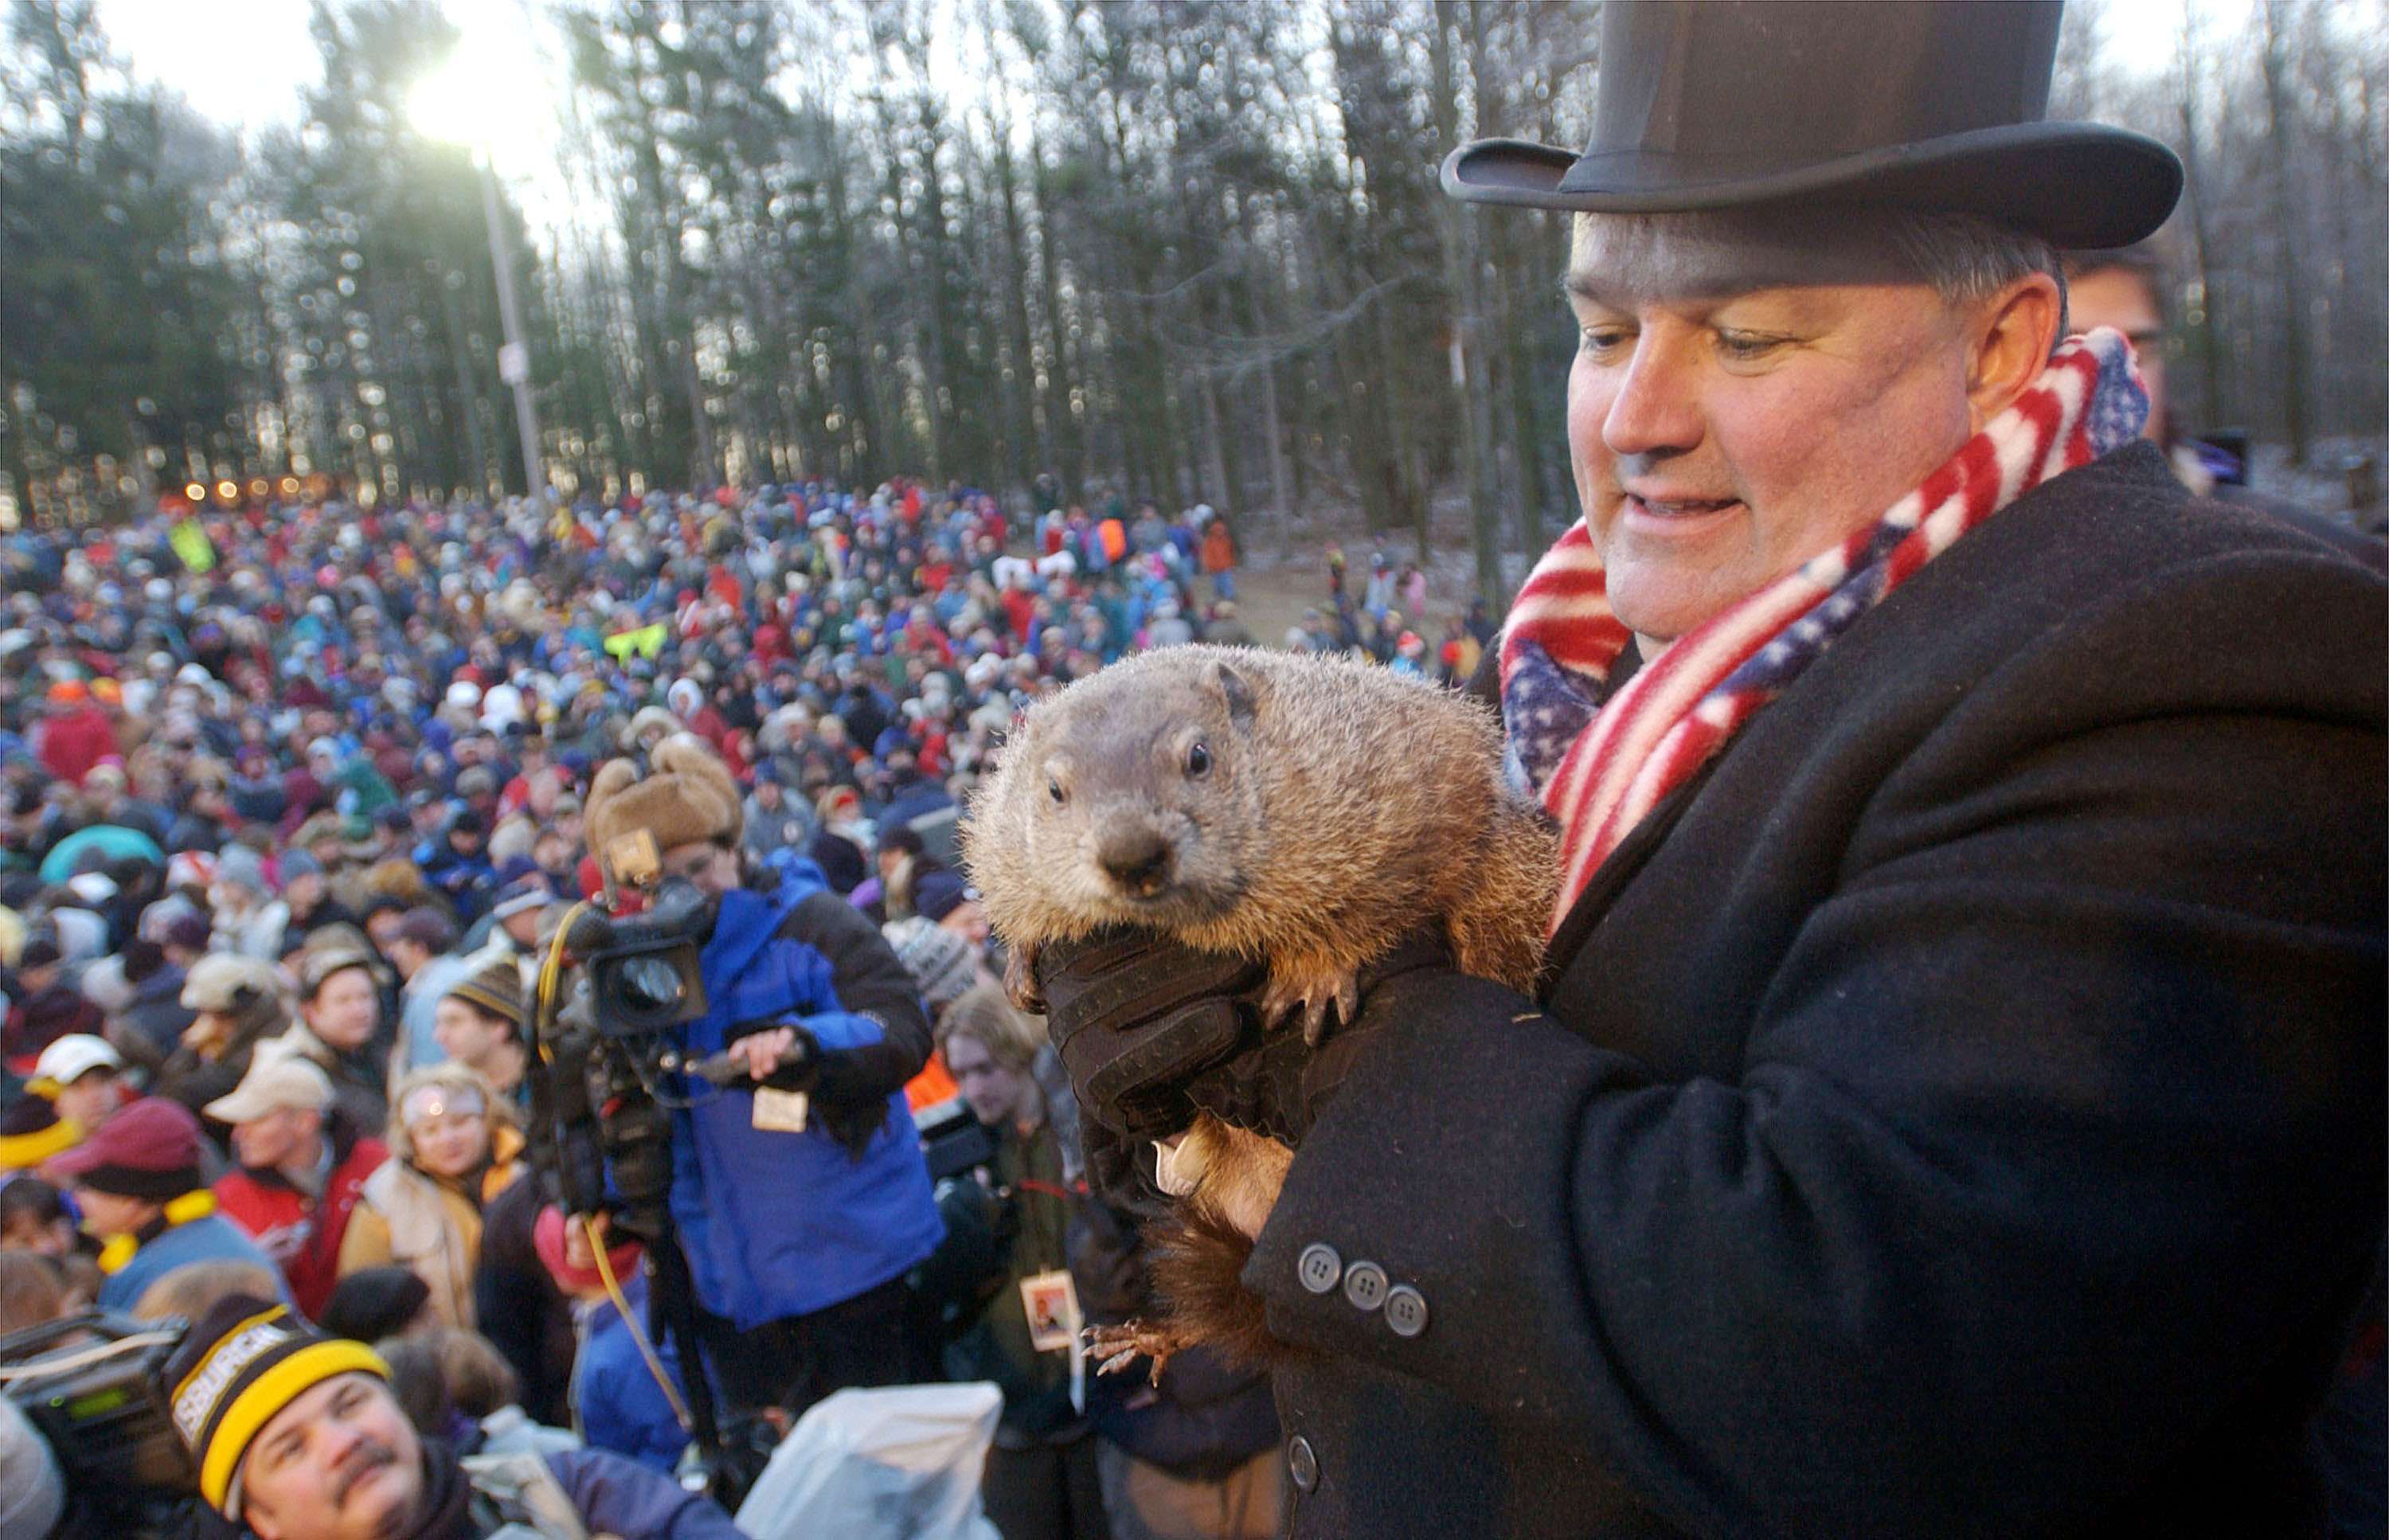 It's Groundhog Day! Punxsutawney Phil predicts 6 more weeks of winter